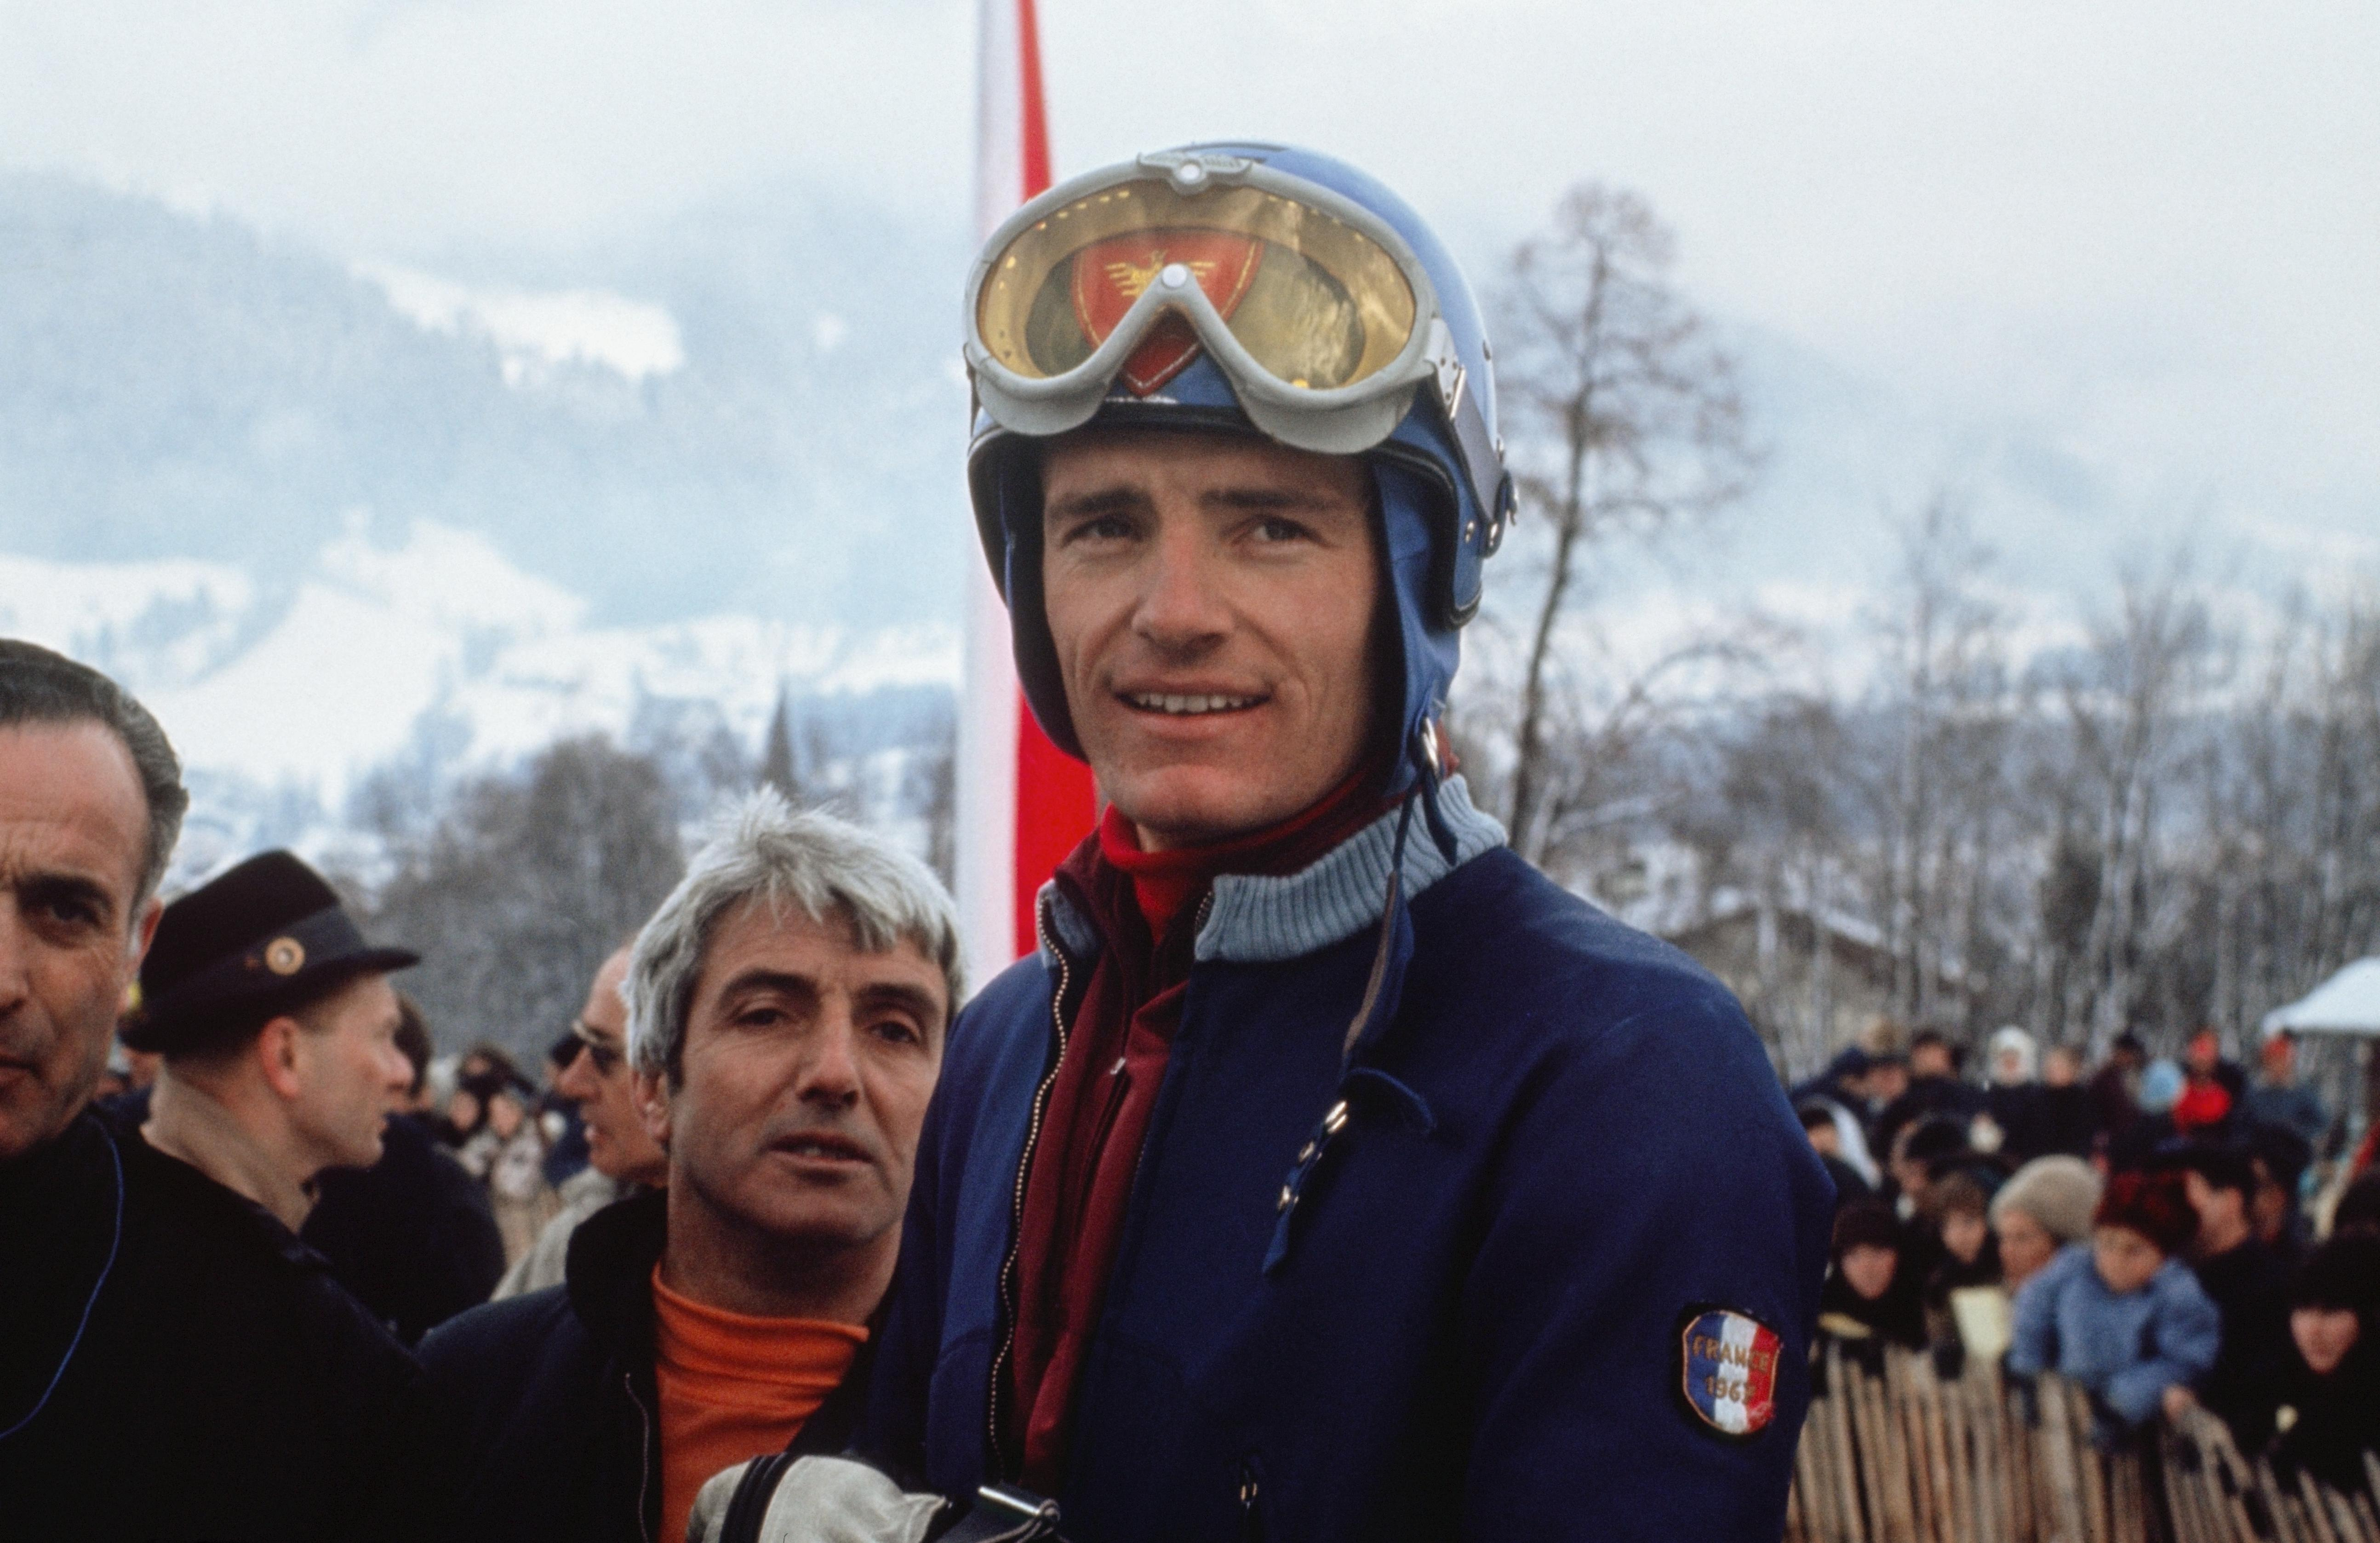 A Chamrousse, Jean-Claude Killy un héros national ! © 1968 / Comité International Olympique (CIO) / United Archives